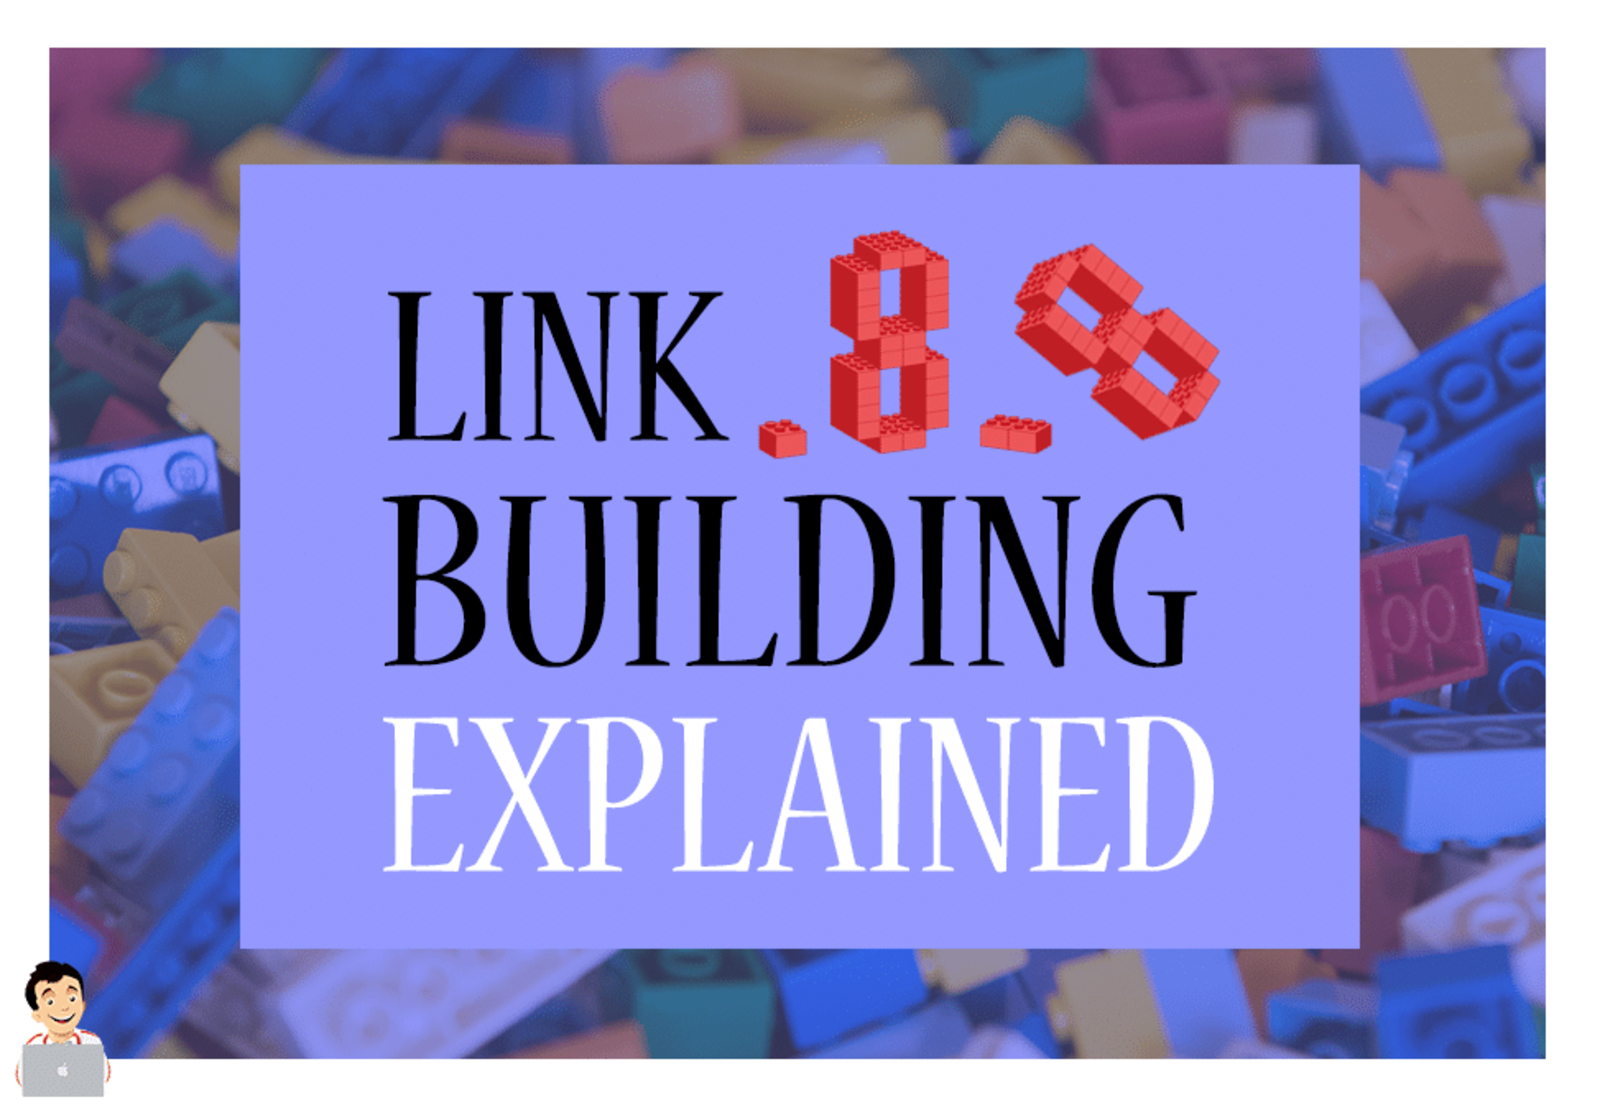 Craig Campbell Link Building Explained